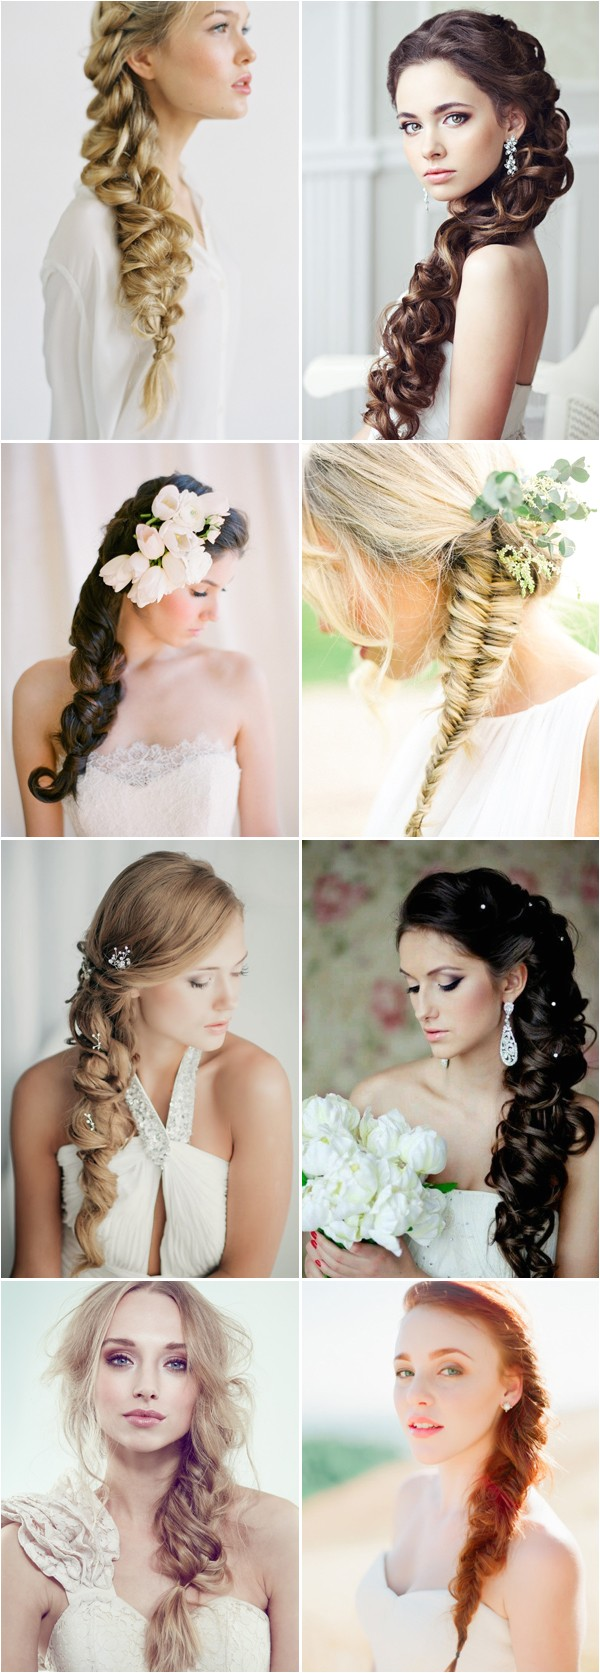 42 wedding hairstyles for long hair